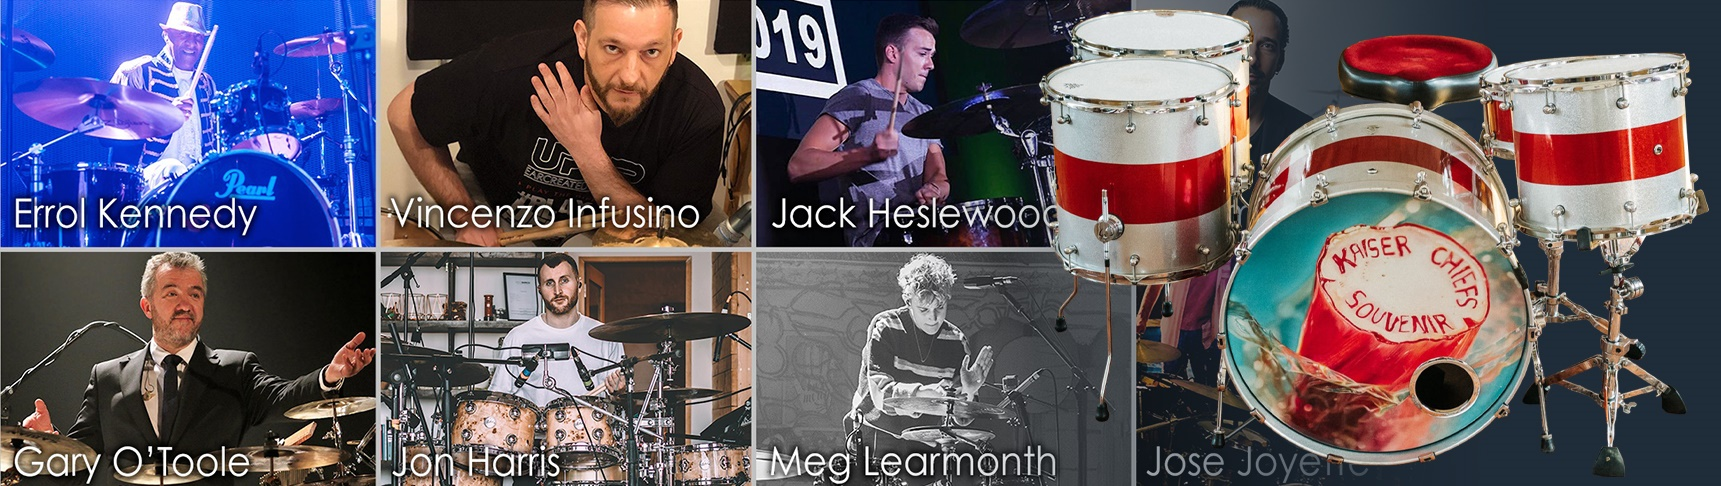 Drumathon 2020 Charity Auction - Drum for the NHS